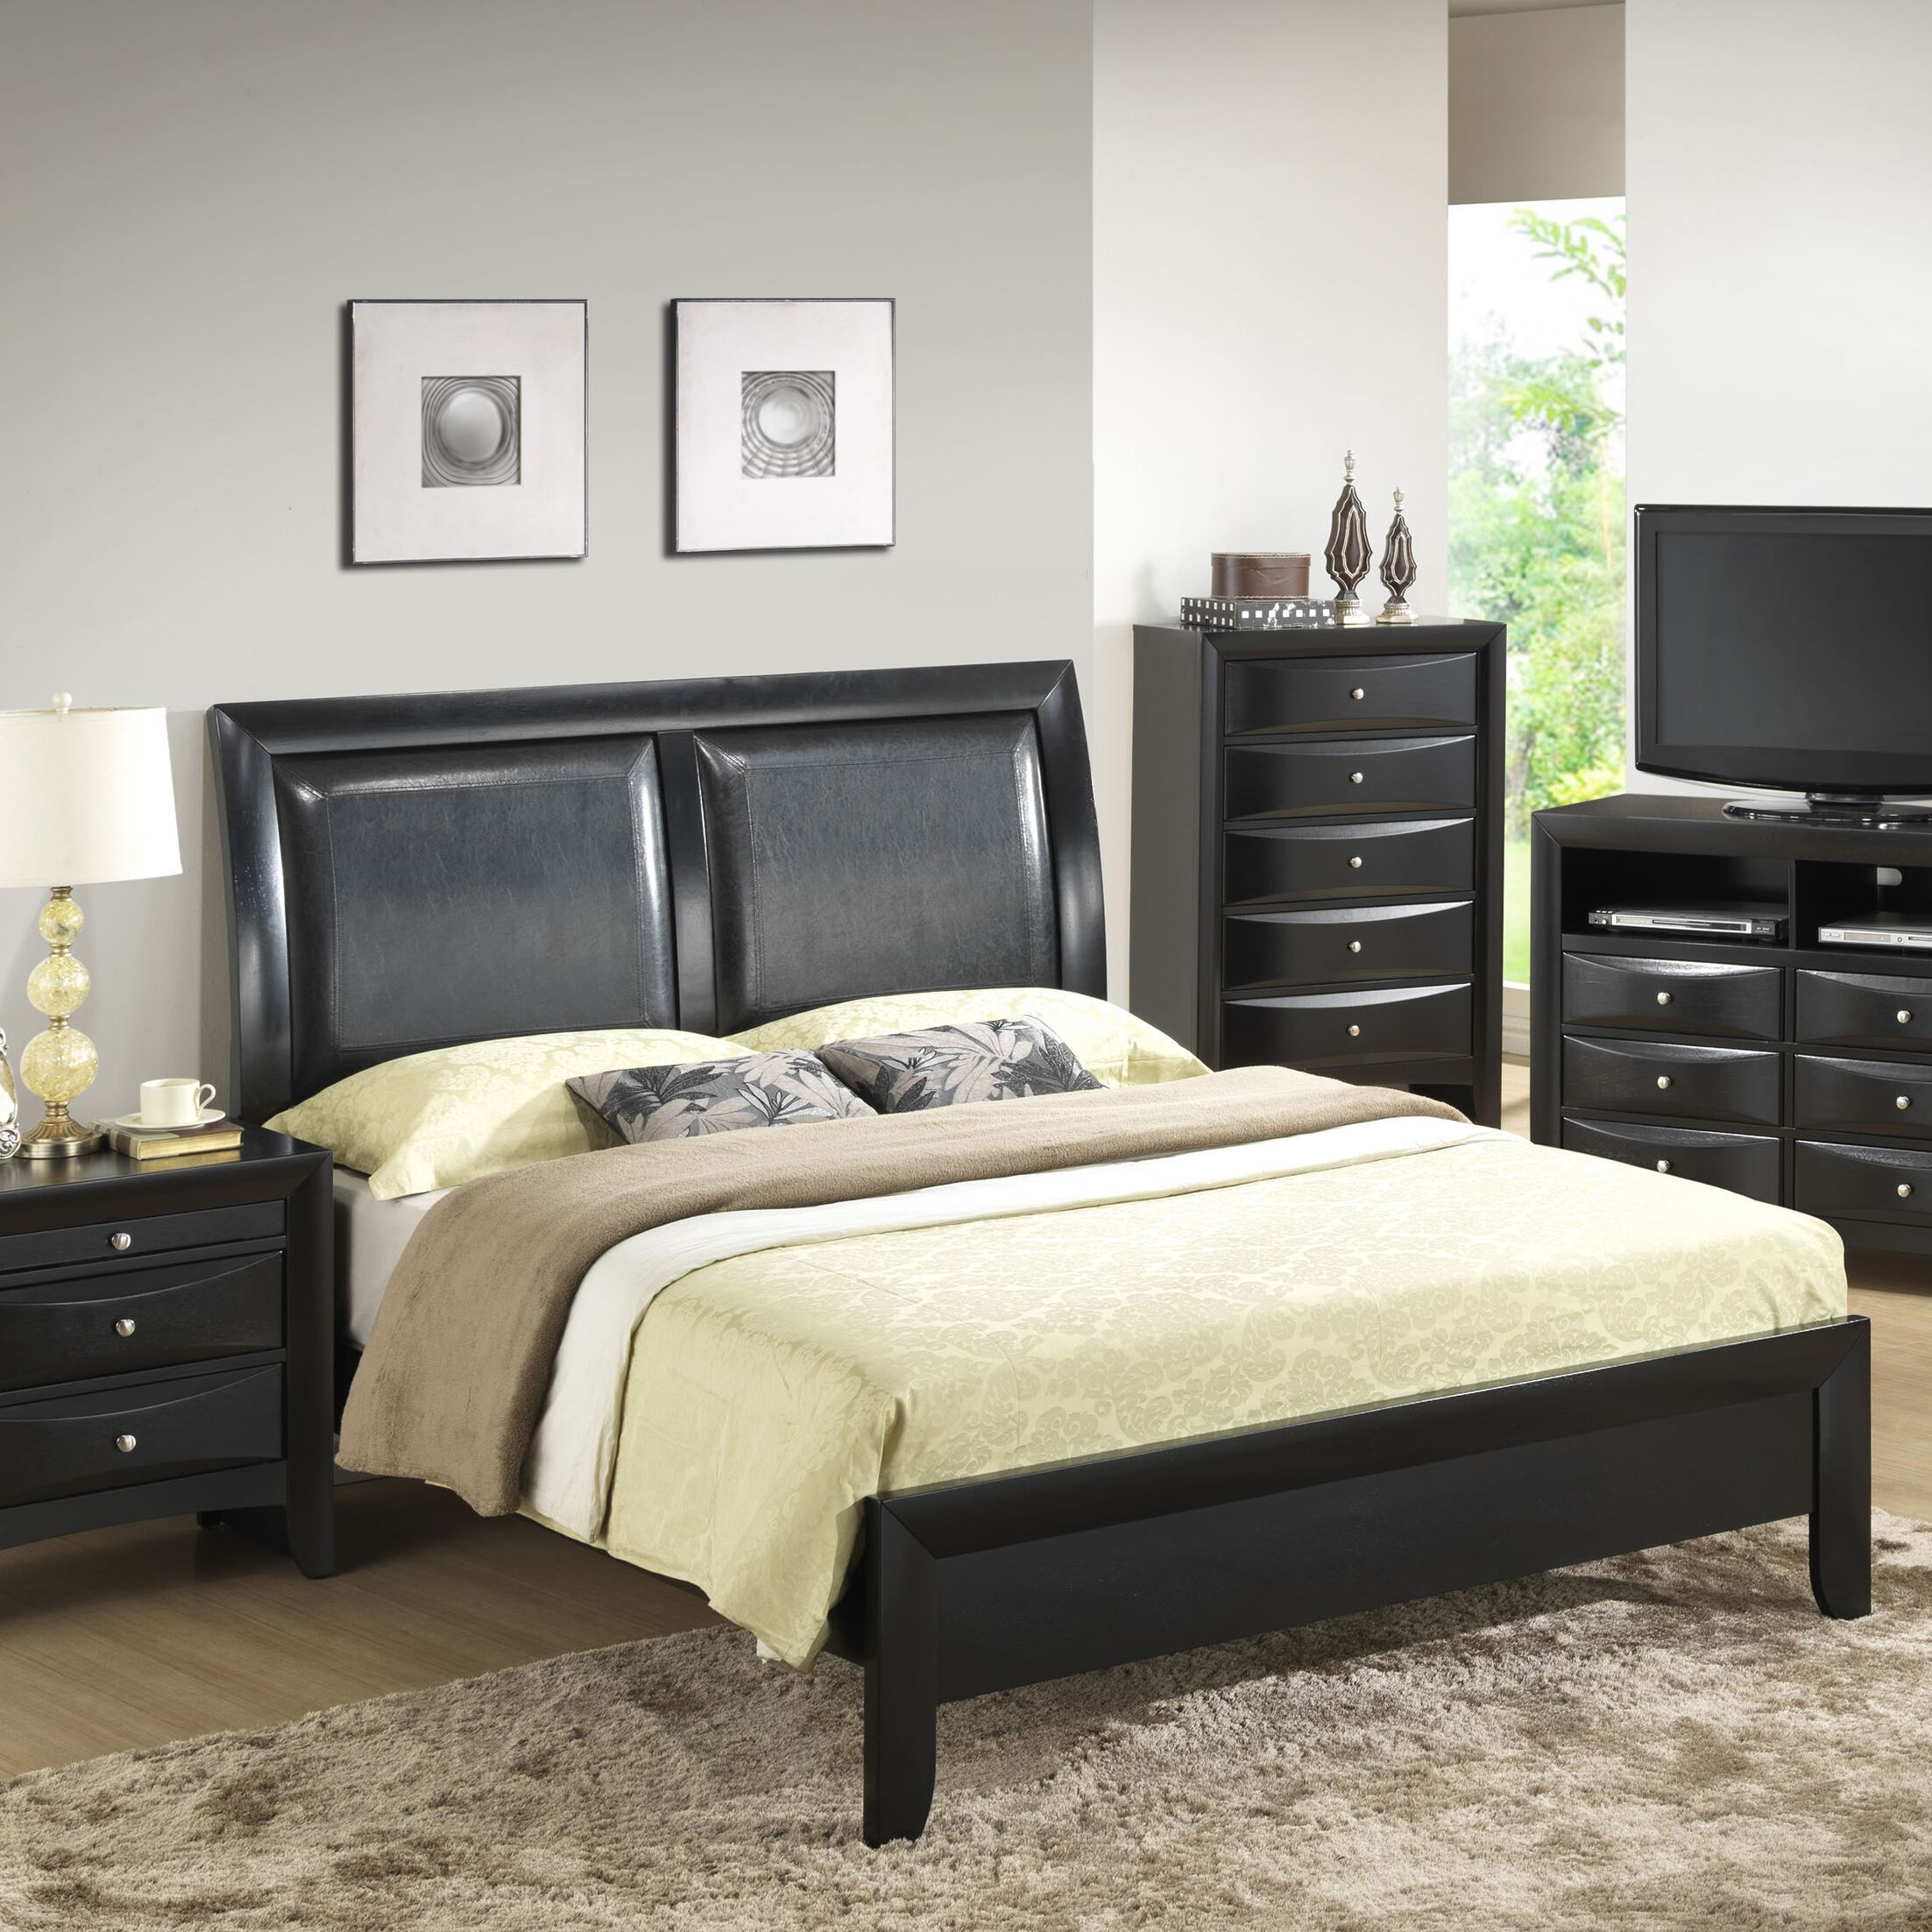 Medford Upholstered Panel Bed Size: Full, Color: Black